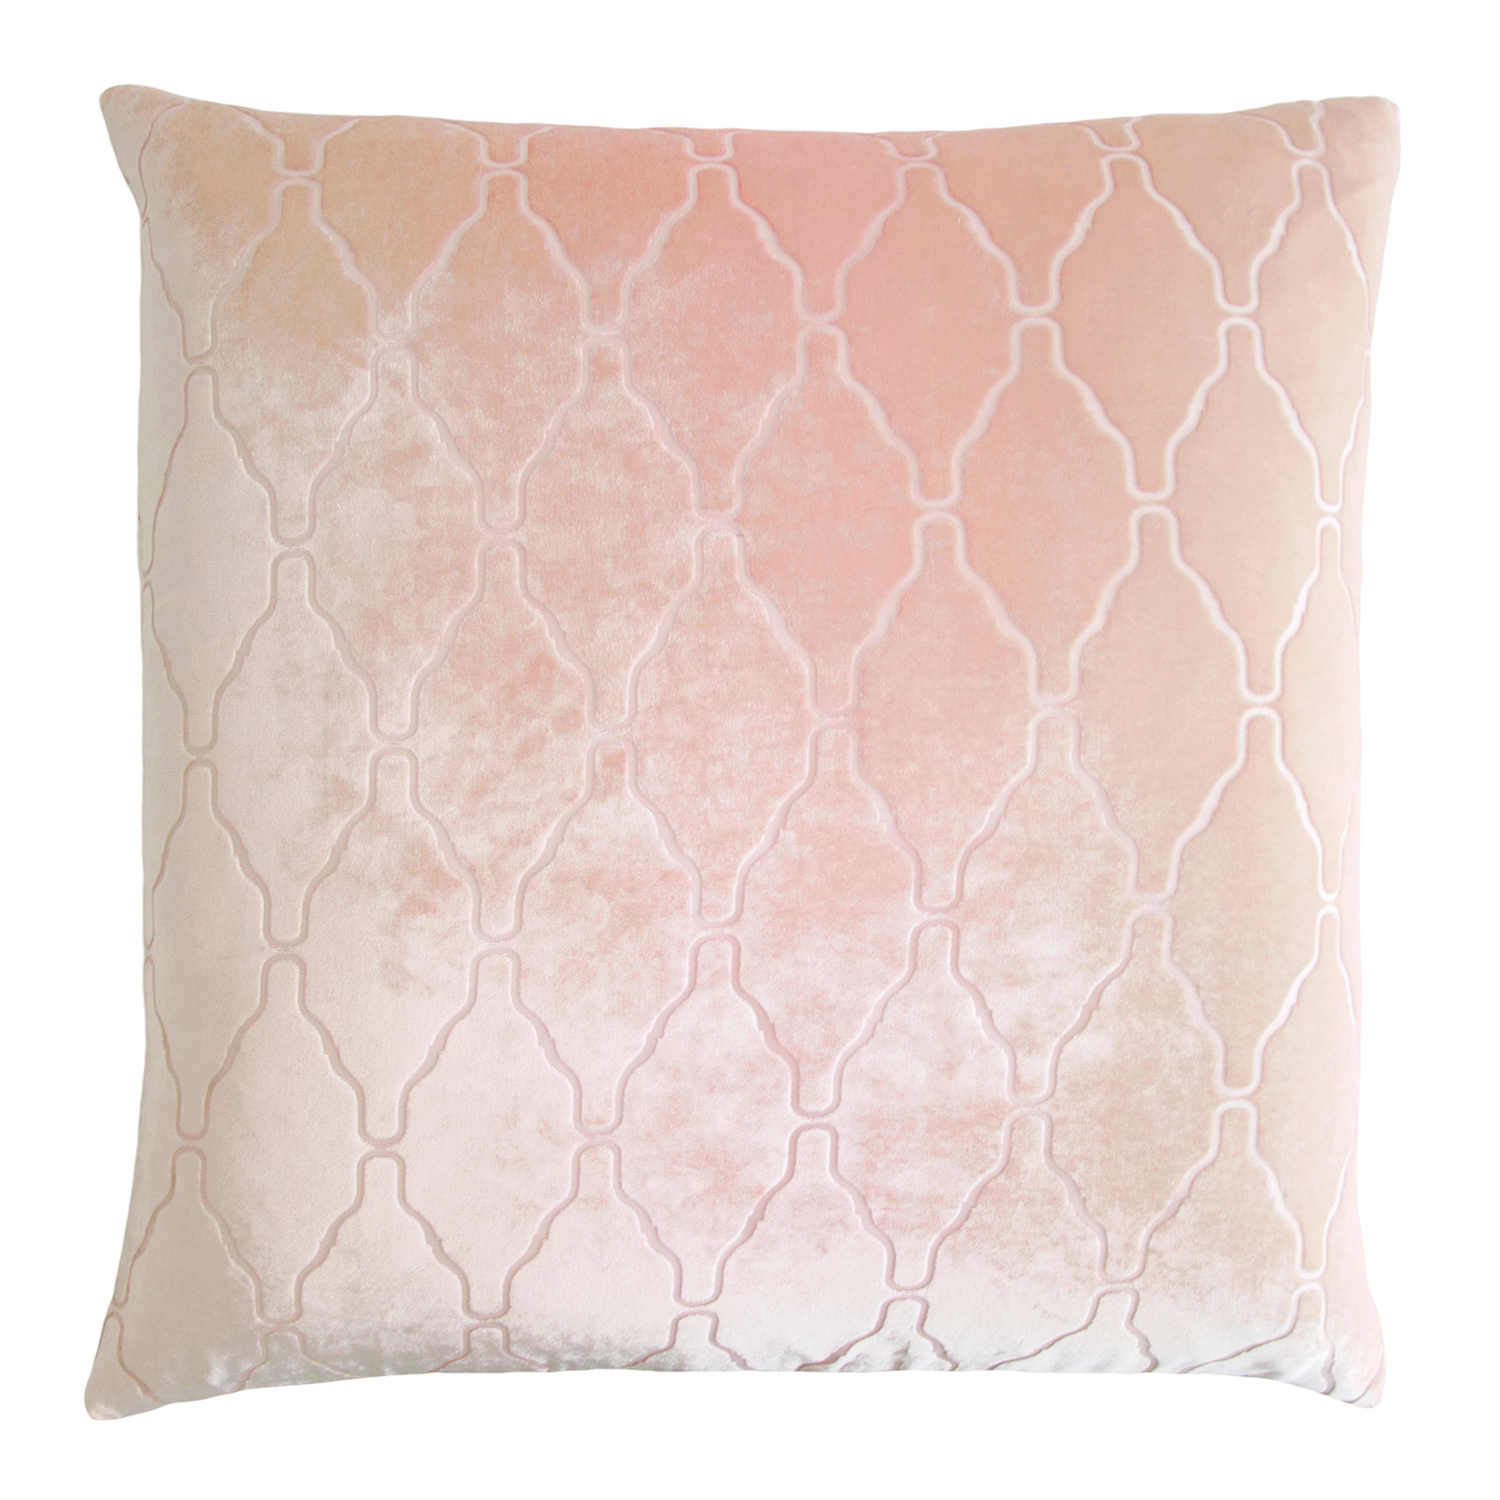 peach pillows throw with decorative full silver uncategorized blush impressive pink of obrien kevin whispering studio triangles inside size metallic pillow decor covers glorious in black